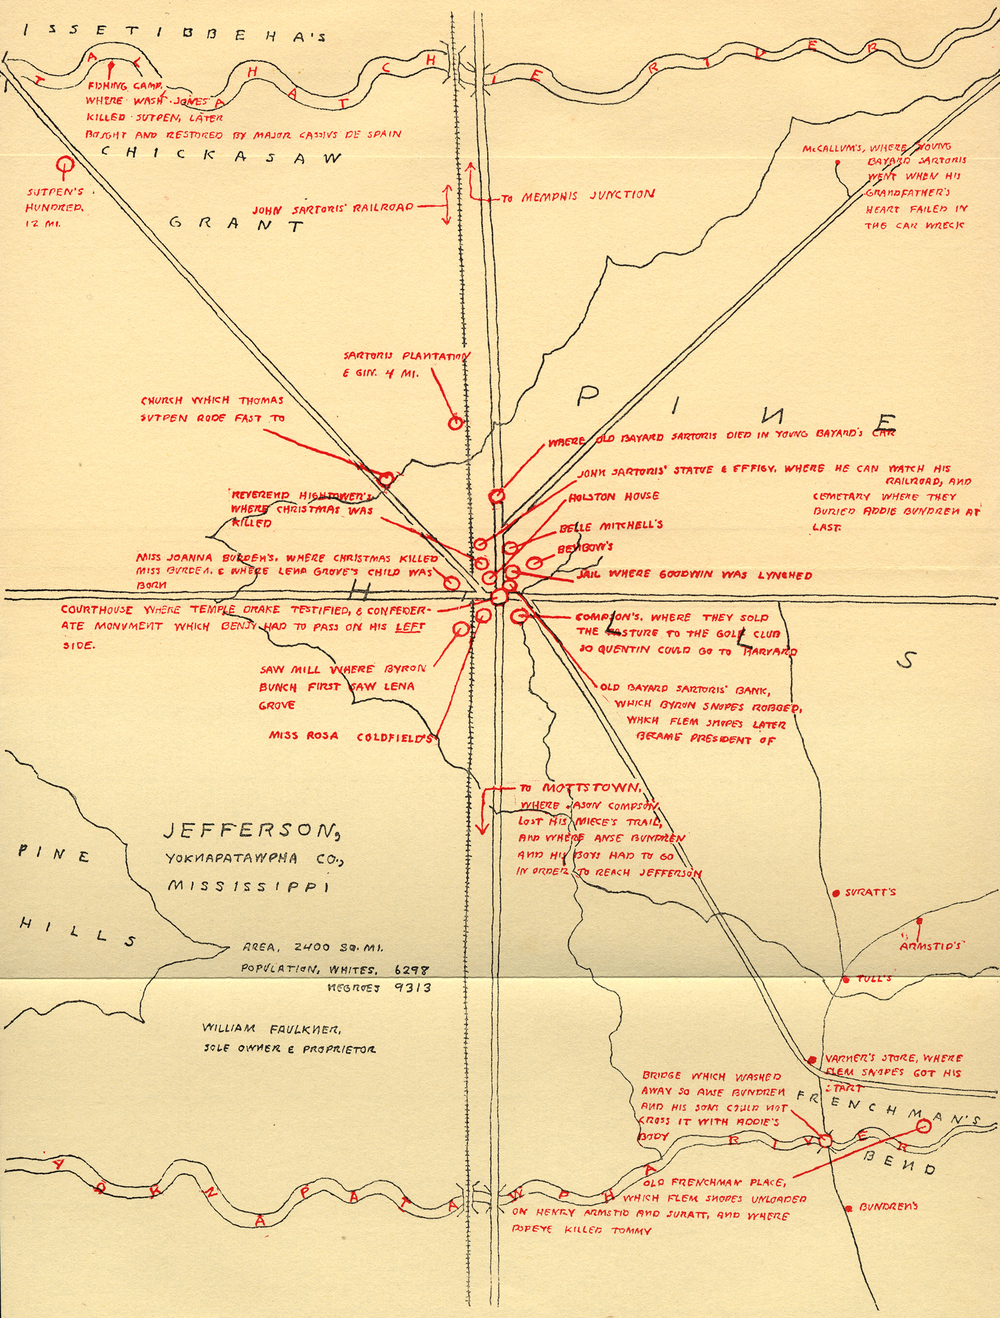 William Faulkner's map of Yoknapatawpha.jpg